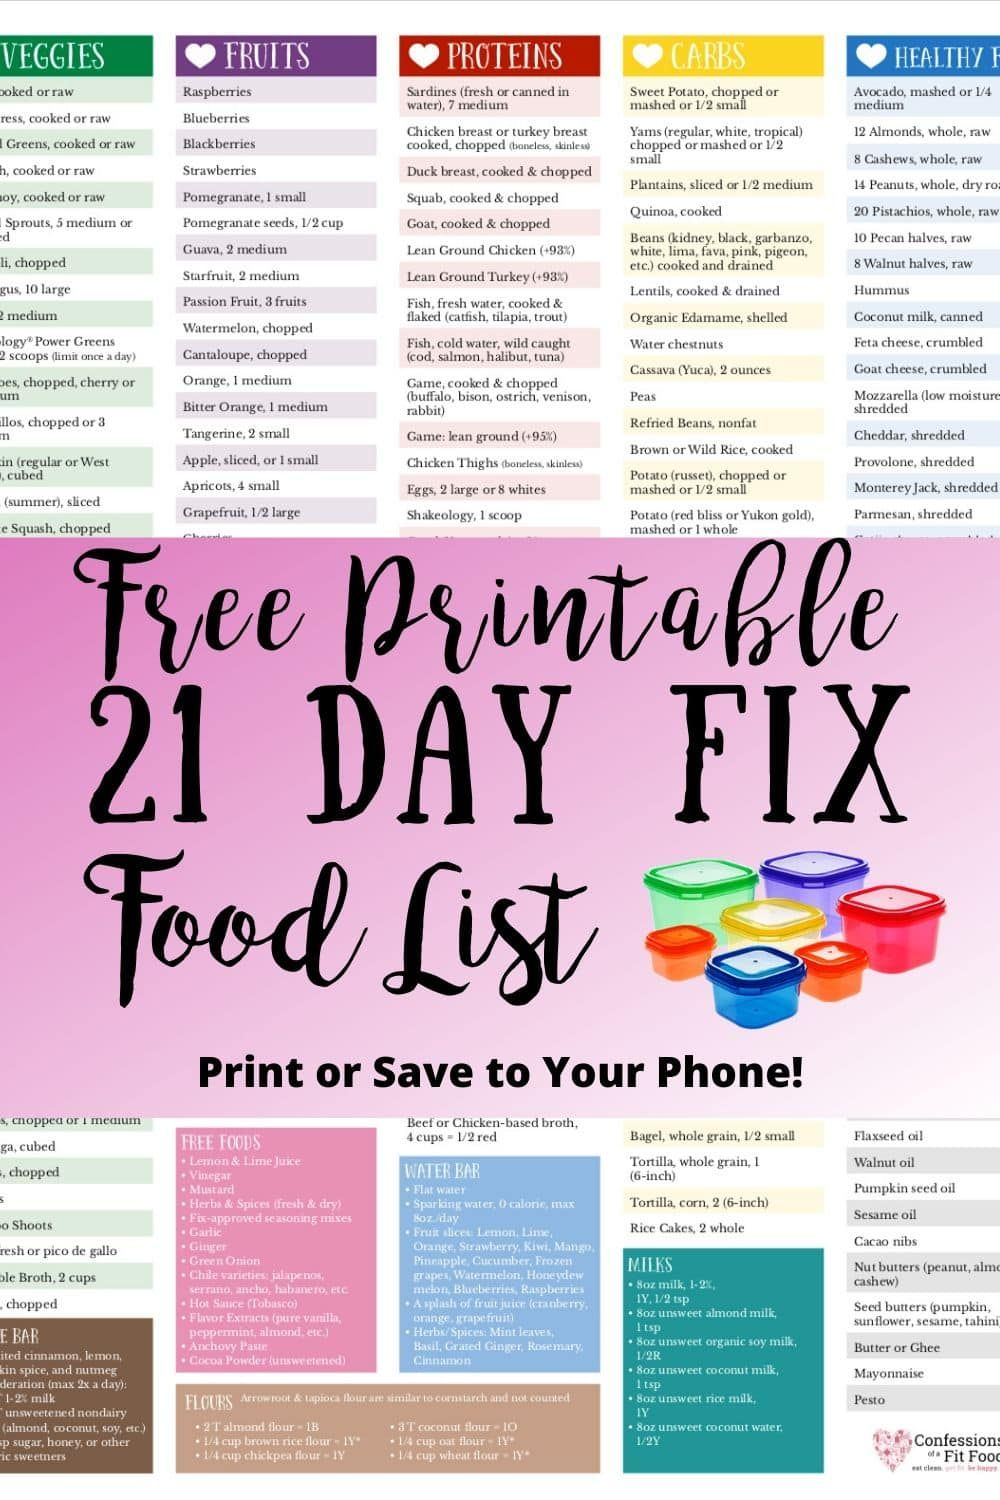 Looking for a 21 Day Fix Updated Food List to print and